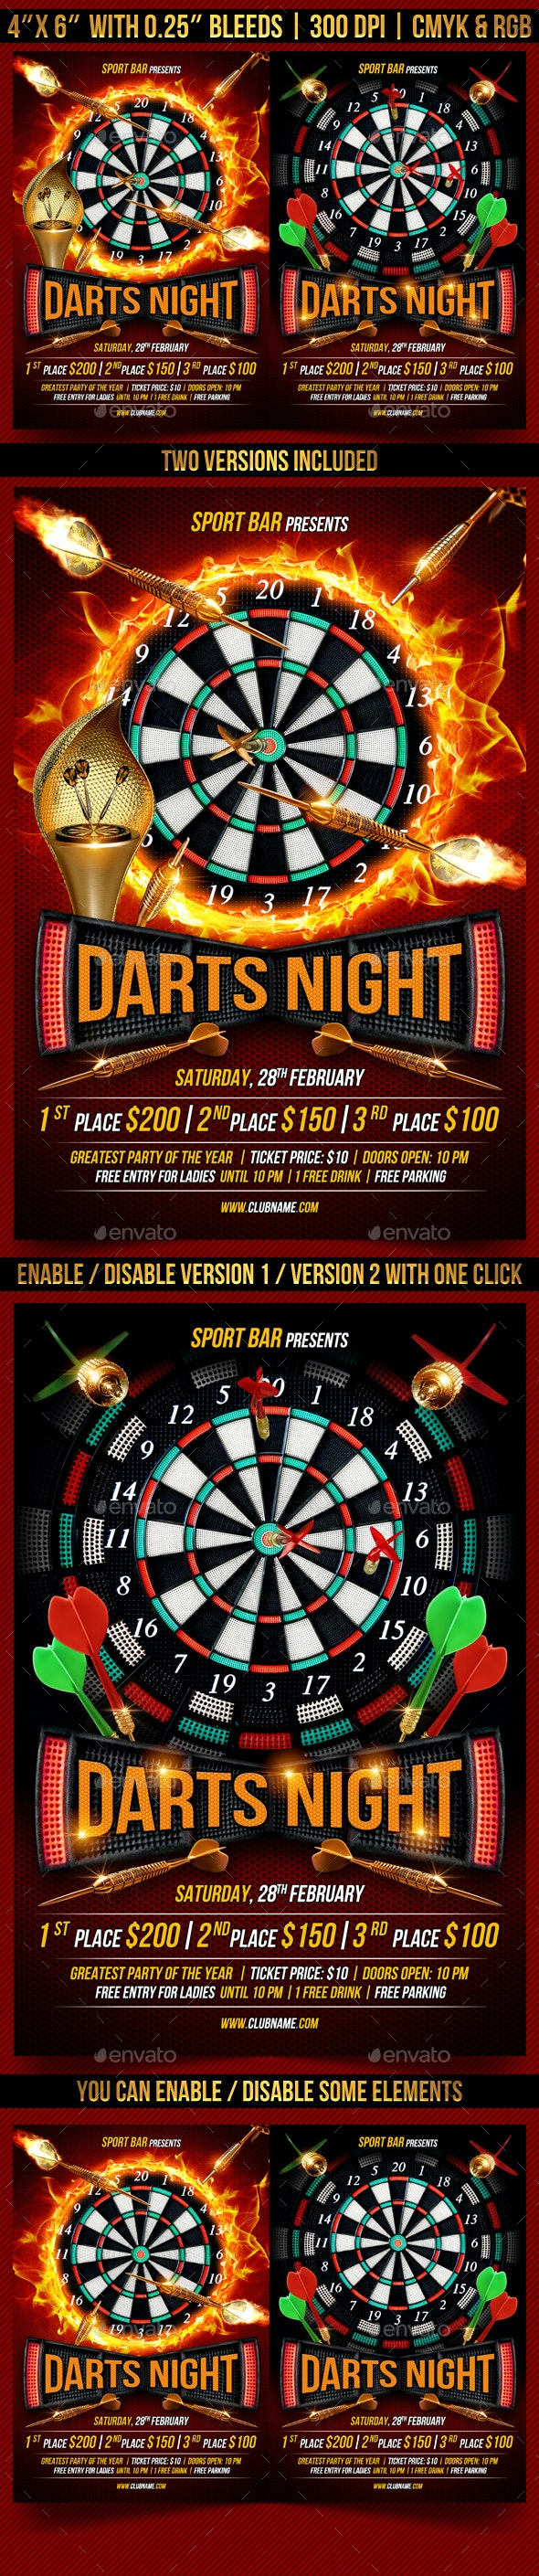 Darts Night Flyer Template - Clubs & Parties Events